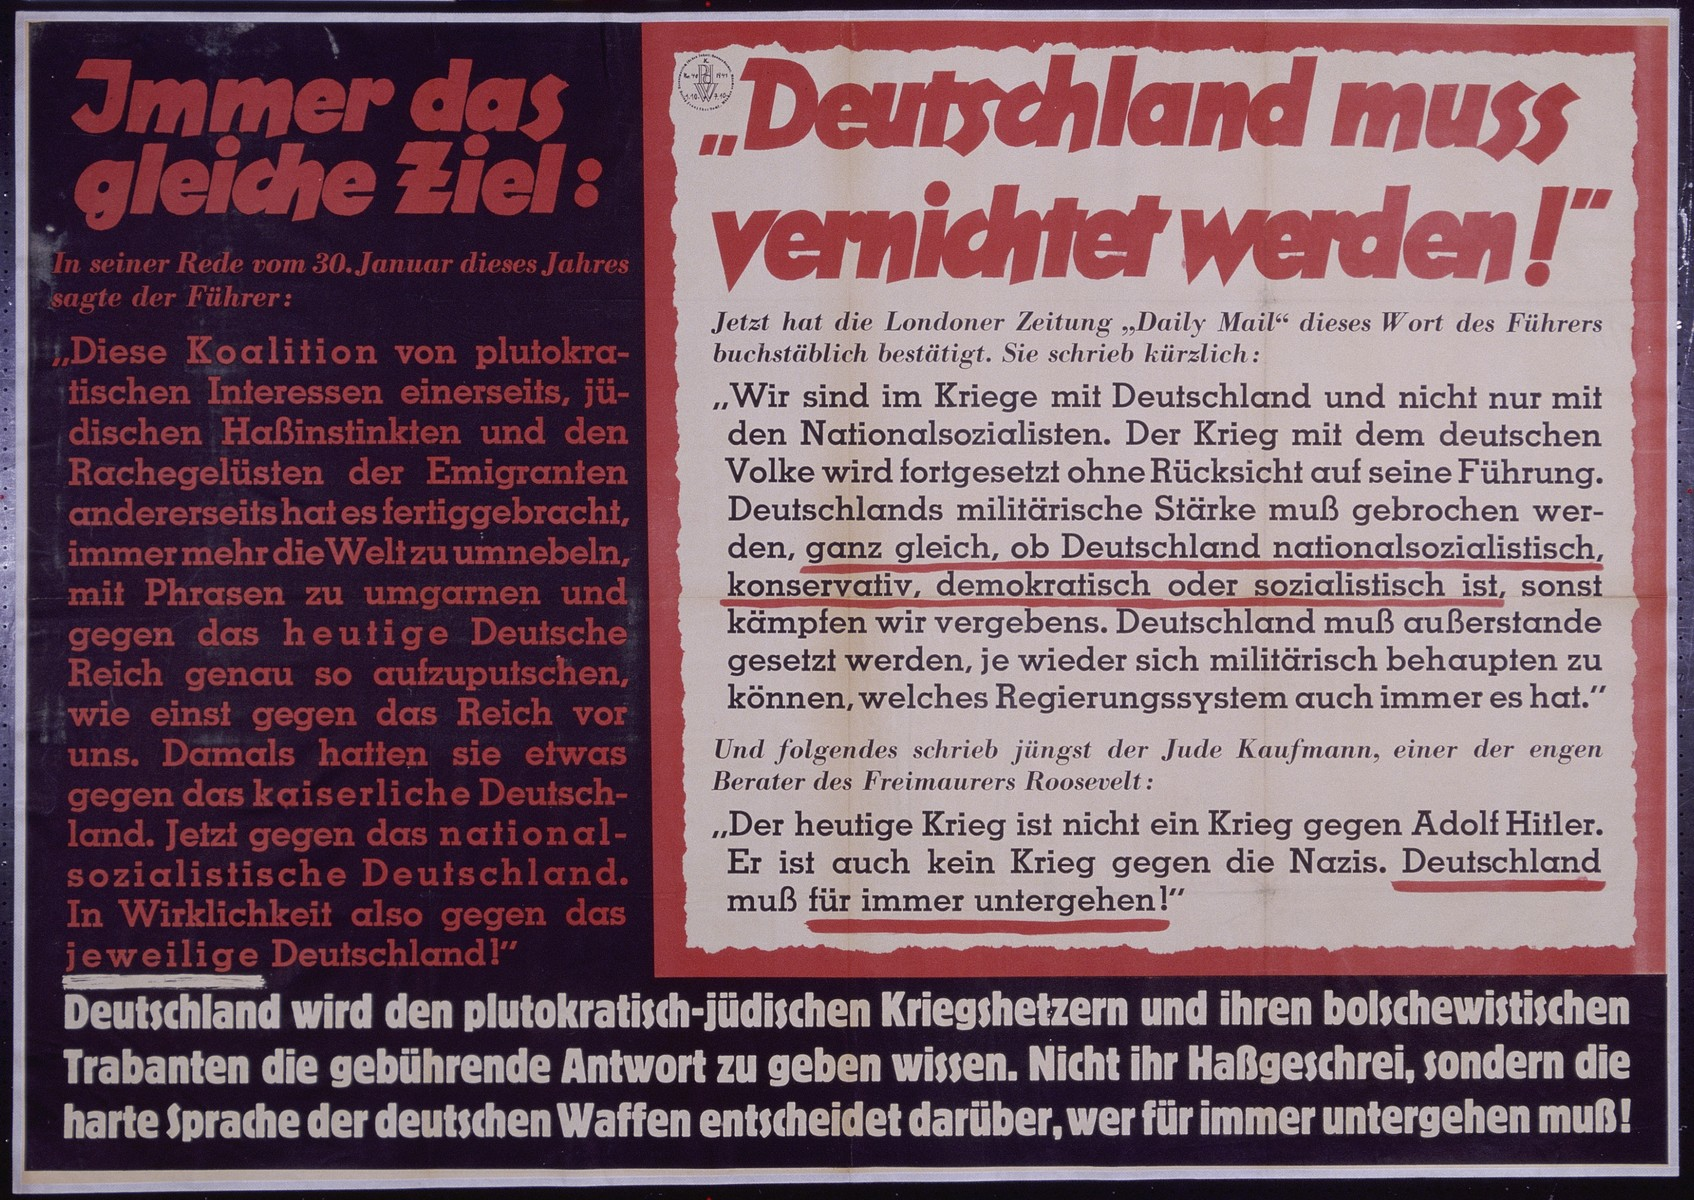 "Nazi propaganda poster, entitled ""Immer das gleiche Ziel: Deutschland mub vernichtet werden,""  issued by the ""Parole der Woche,"" a wall newspaper (Wandzeitung) published by the National Socialist Party propaganda office in Munich.  The translation of the poster reads,  Always the same Objective: In his speech on January 30th the Leader stated: ""This coalition of plutocratic interests has on the one hand Jewish hate instincts and the lust for revenge of emigrants and on the other hand it has managed to increasingly cloud the world with phrases that will ensnare and adrenalize opposition against the present German empire, this is exactly what was done to the empire before us.  At that time they had something against Imperial Germany and now, against National Socialist Germany.  Thus in reality, opposition respective to Germany!""  [Inset]  ""Germany must be destroyed!"" The London Newspaper, ""Daily Mail"" acknowledges the Leader with these words.  Recently, they wrote: 'We are at war with Germany and not only with the National Socialists.  The War with the German Nation will continue without consideration of his command.  Germany's military strength must be immediately broken, whether Germany is national socialist, conservative, democratic, or socialist, otherwise we fight in vain.  Germany must be disabled, and never again able to assert its military, no matter what system of governing it possesses."" And the following was written recently by the Jew Kaufmann, a close advisor to the freemason Roosevelt: ""The current war is not a war against Adolf Hitler.  It is also not a war against the Nazis.  Germany must perish forever!""  Germany will know the right answer to give the plutocratic-Jewish warmongers and their Bolshevik subordinates.  Their rancorous clamor does not determine who perishes, but rather the hard line of German weaponry."